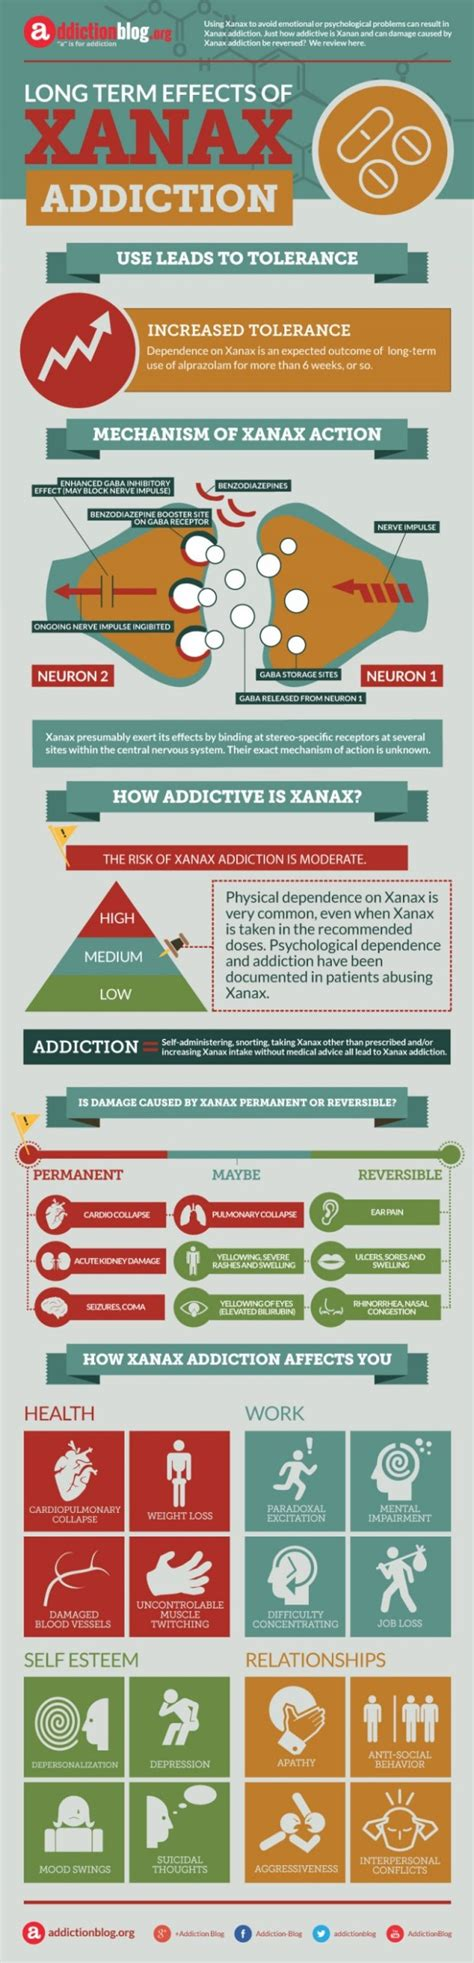 How Does Detox Take With Benzos by Xanax Addiction Symptoms How To Tell If You Re Hooked